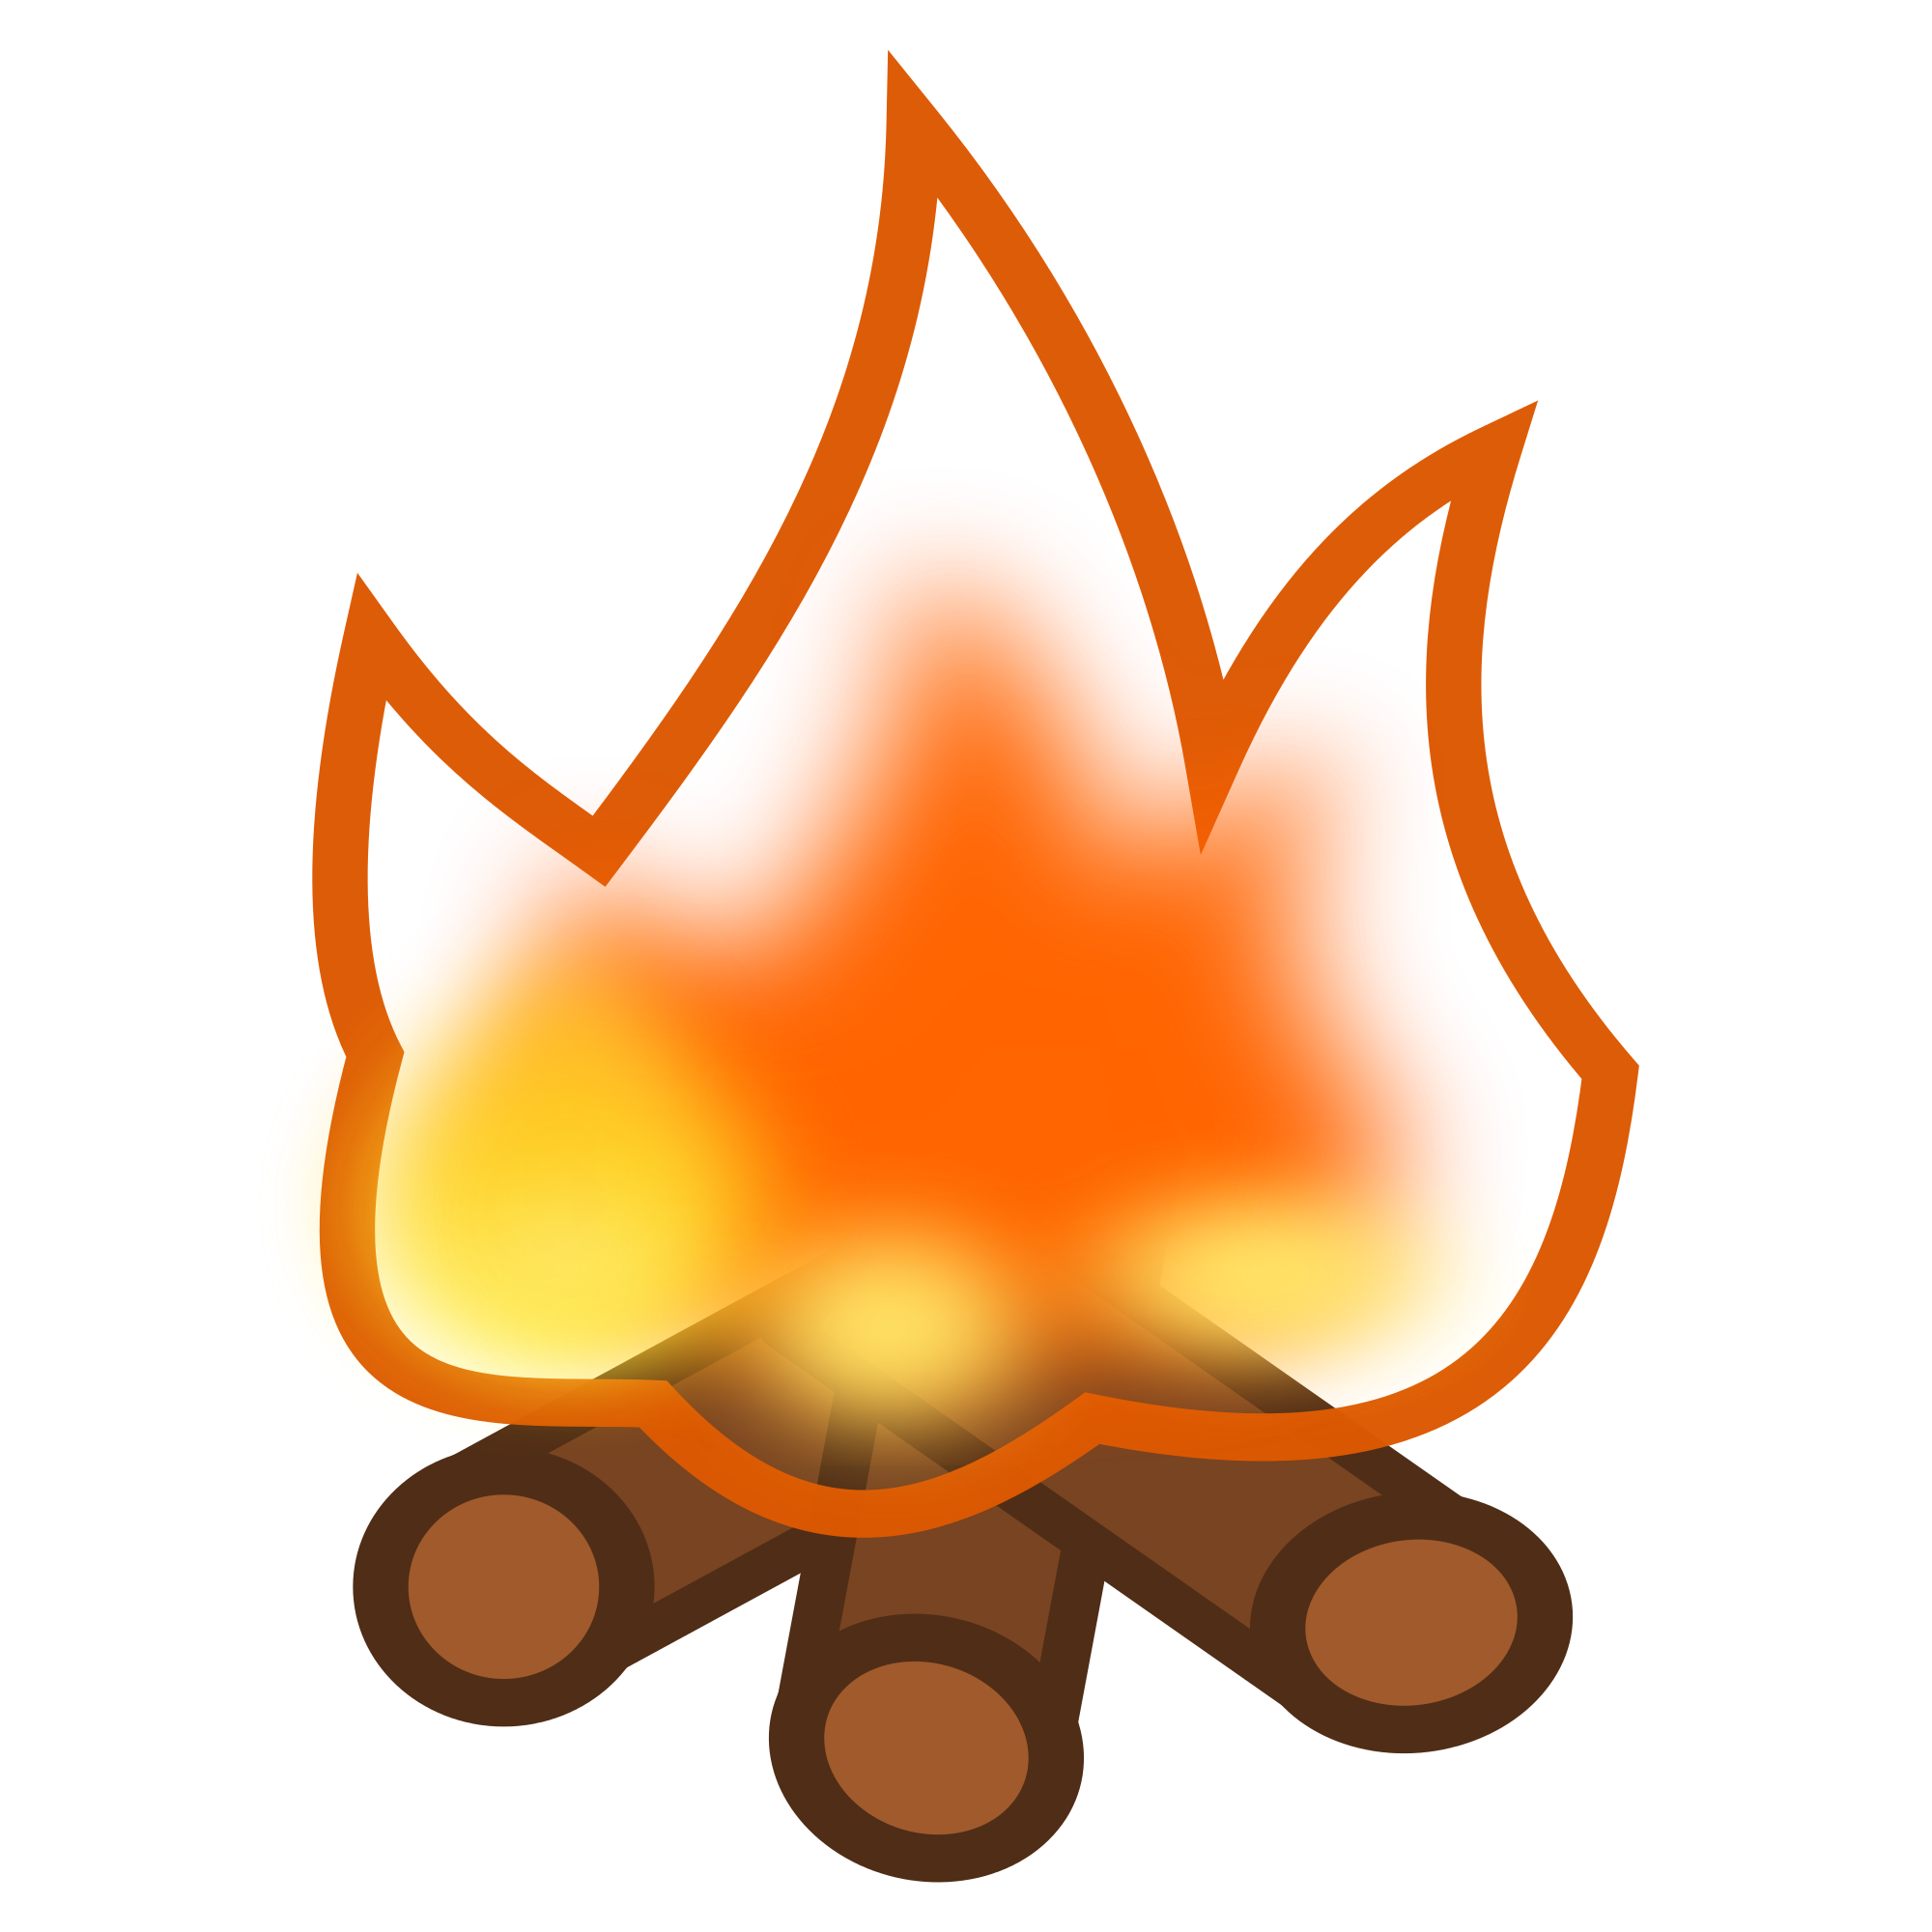 Campfire svg #5, Download drawings